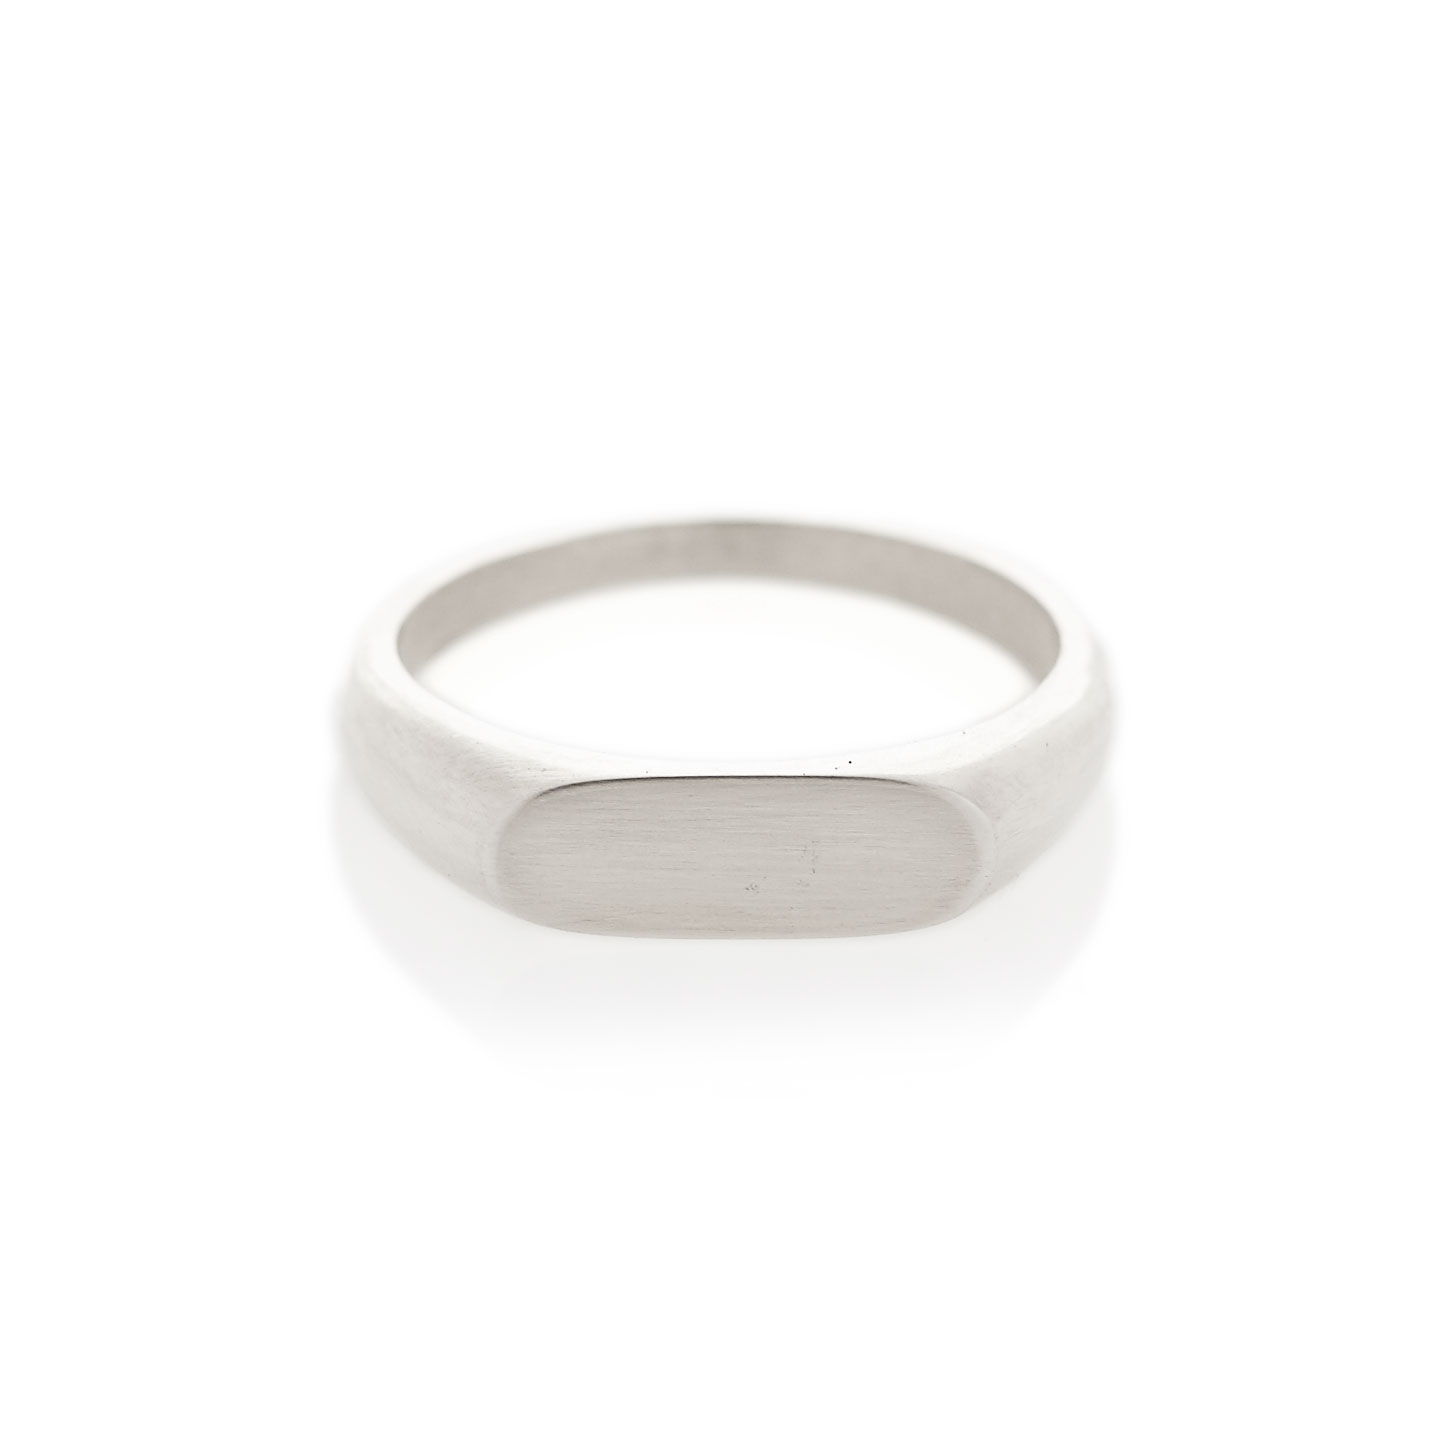 A landscape oval shaped signet ring in sterling silver. The face size is approximately 5.5mm x 15mm. Available with either a brushed or polished finish. 